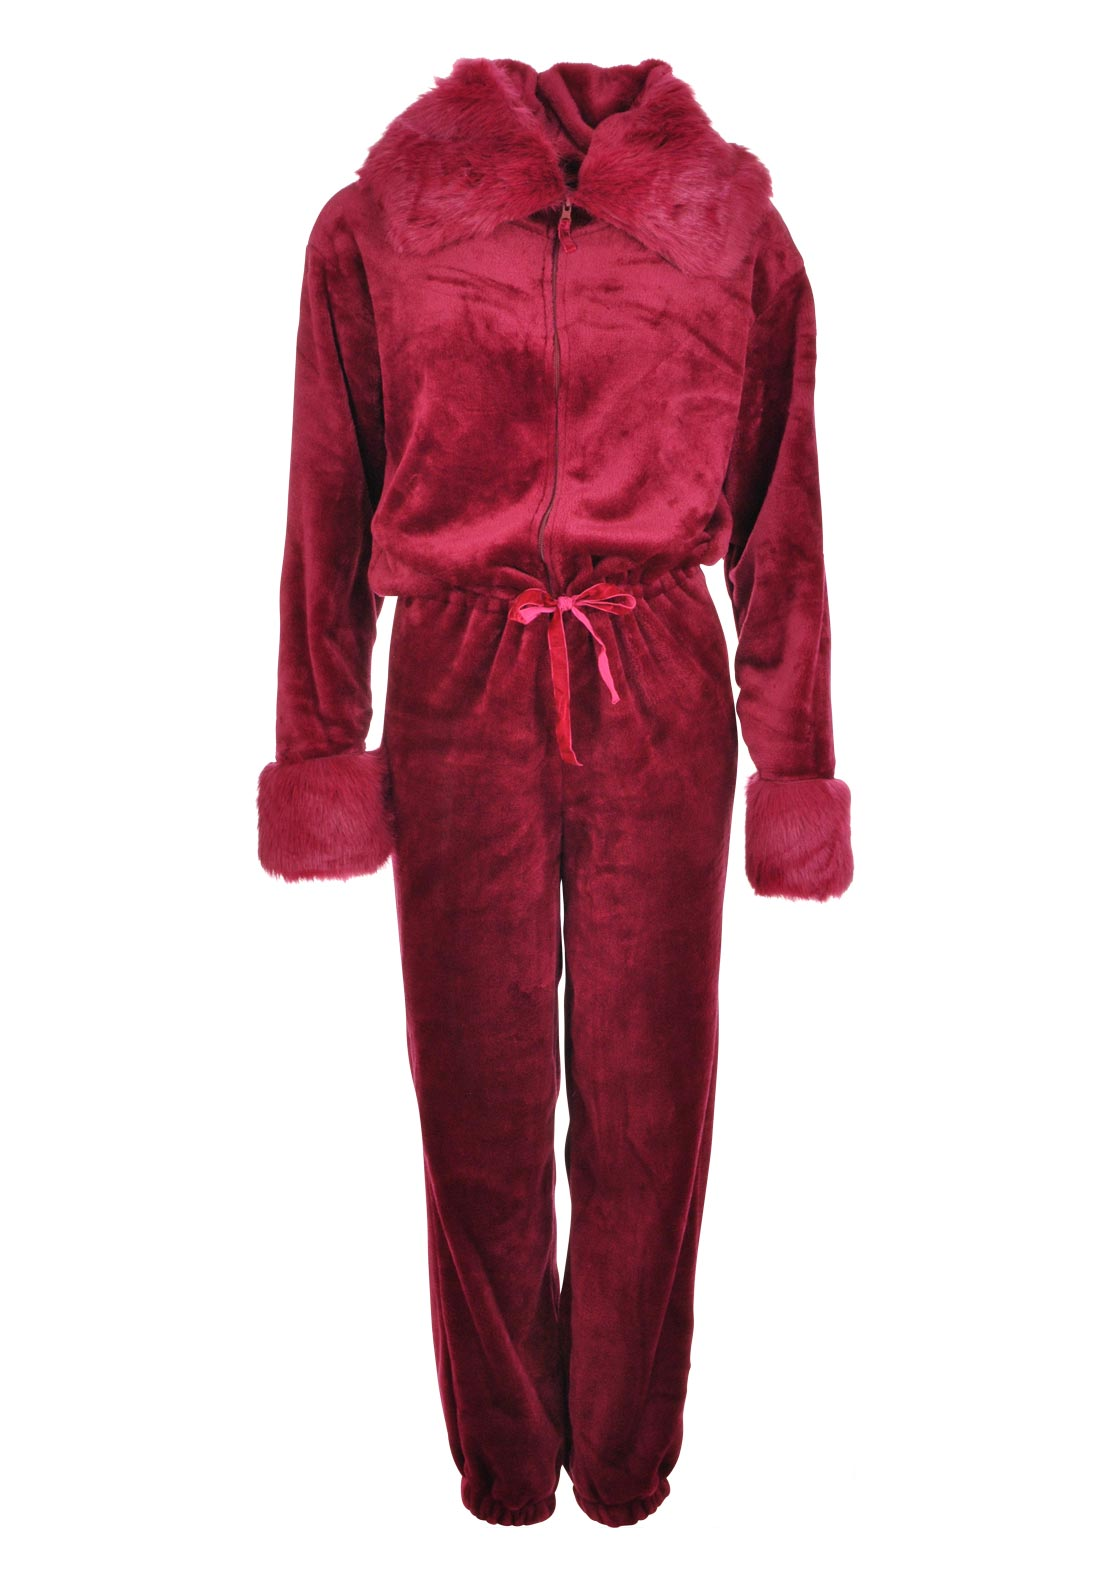 Inspirations Luxury Faux Fur Trimmed Hood Onesie, Wine